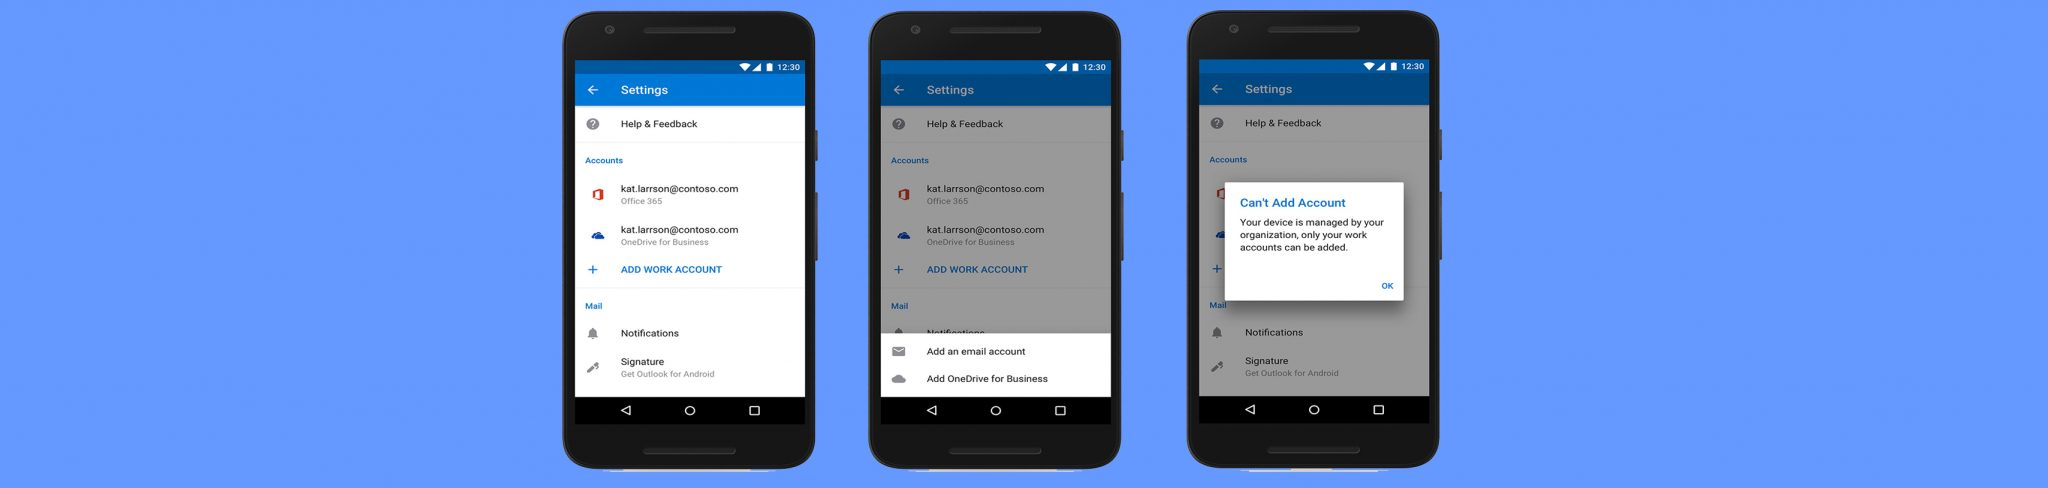 Outlook mobile getting new security and management features